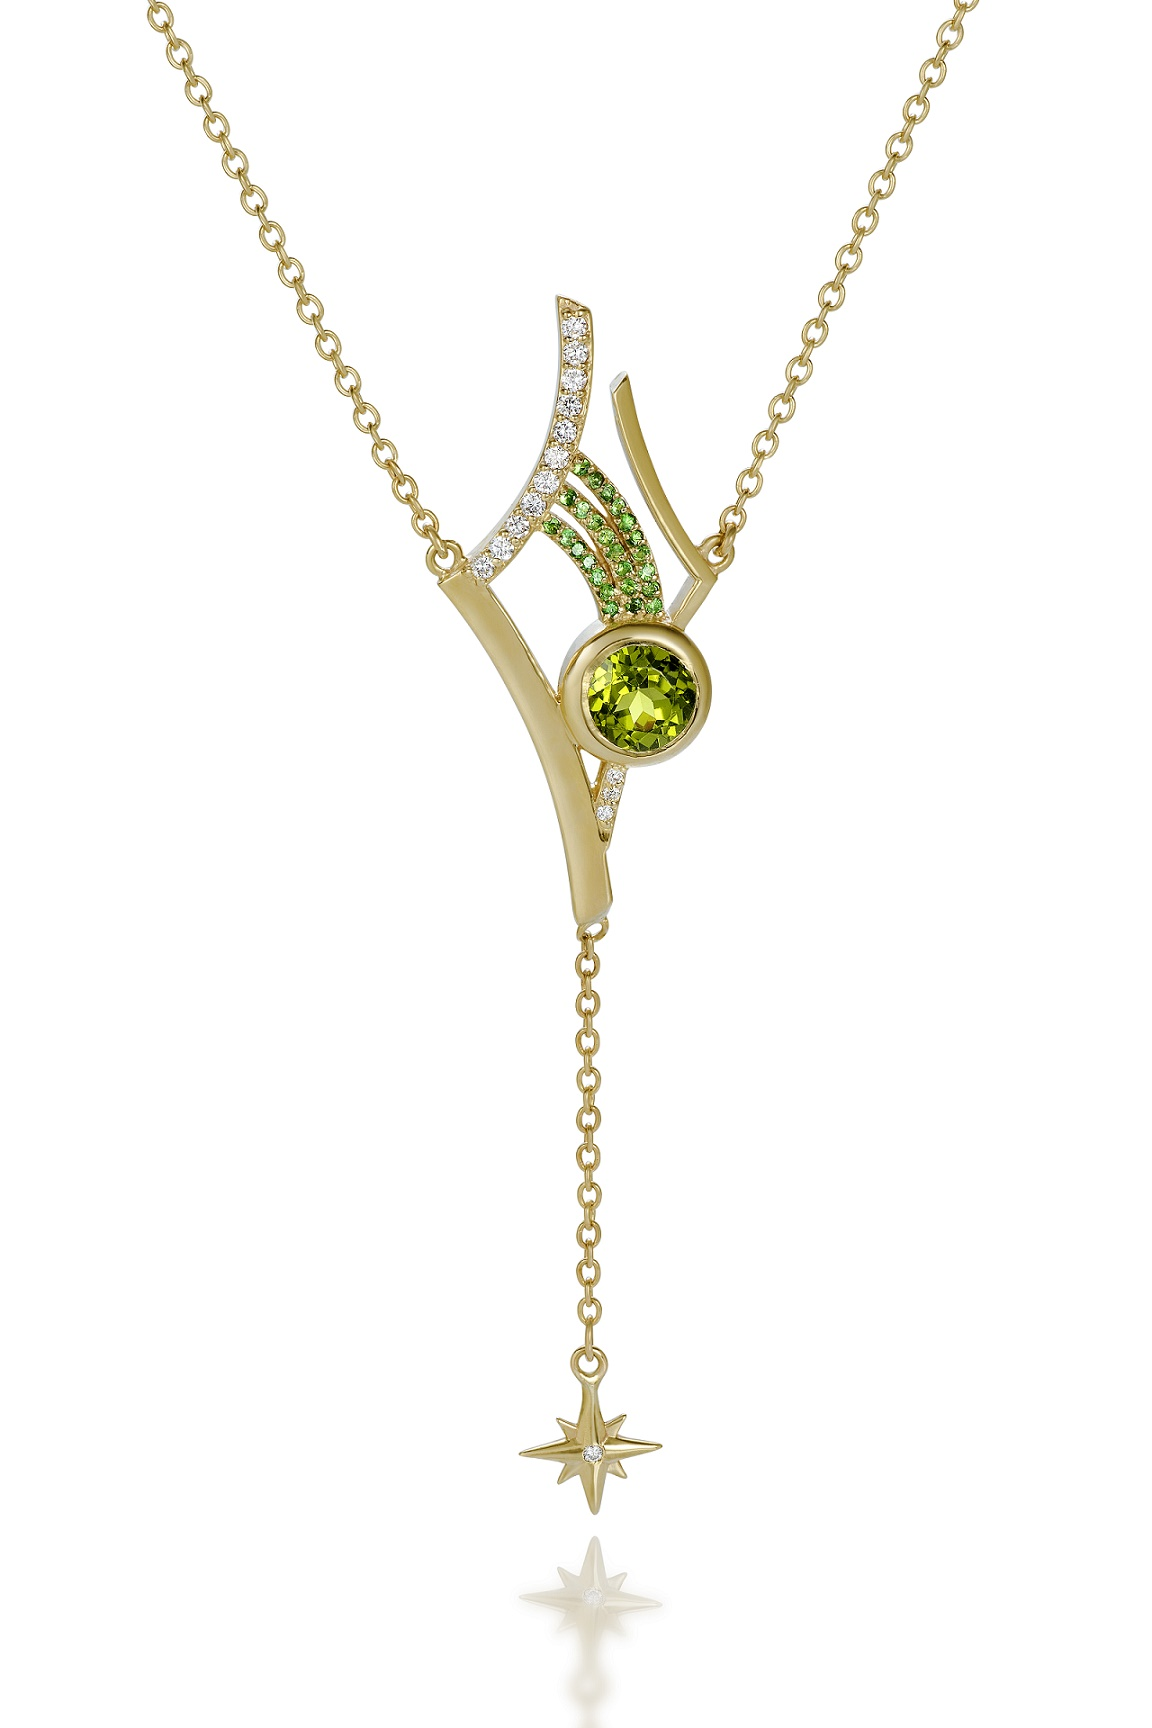 Martha Seely Shooting Stars collection Antares necklace #BRITTSPICK | JCK On Your Market